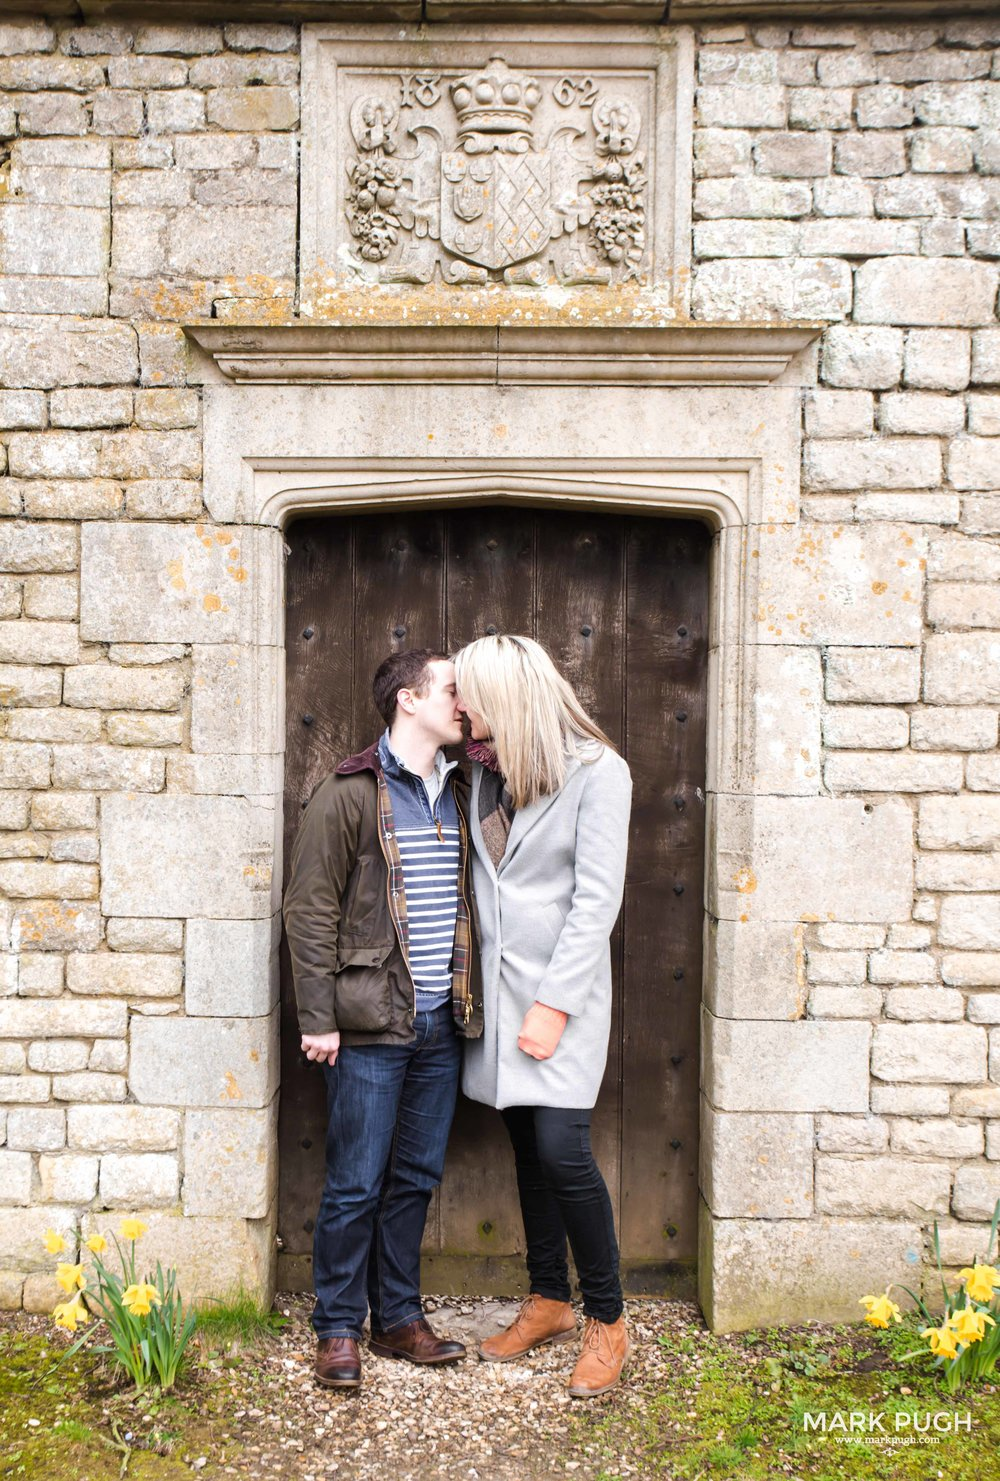 002 - Fliss and Jamie - fineART preWED photography by www.markpugh.com Mark Pugh of www.mpmedia.co.uk_.JPG